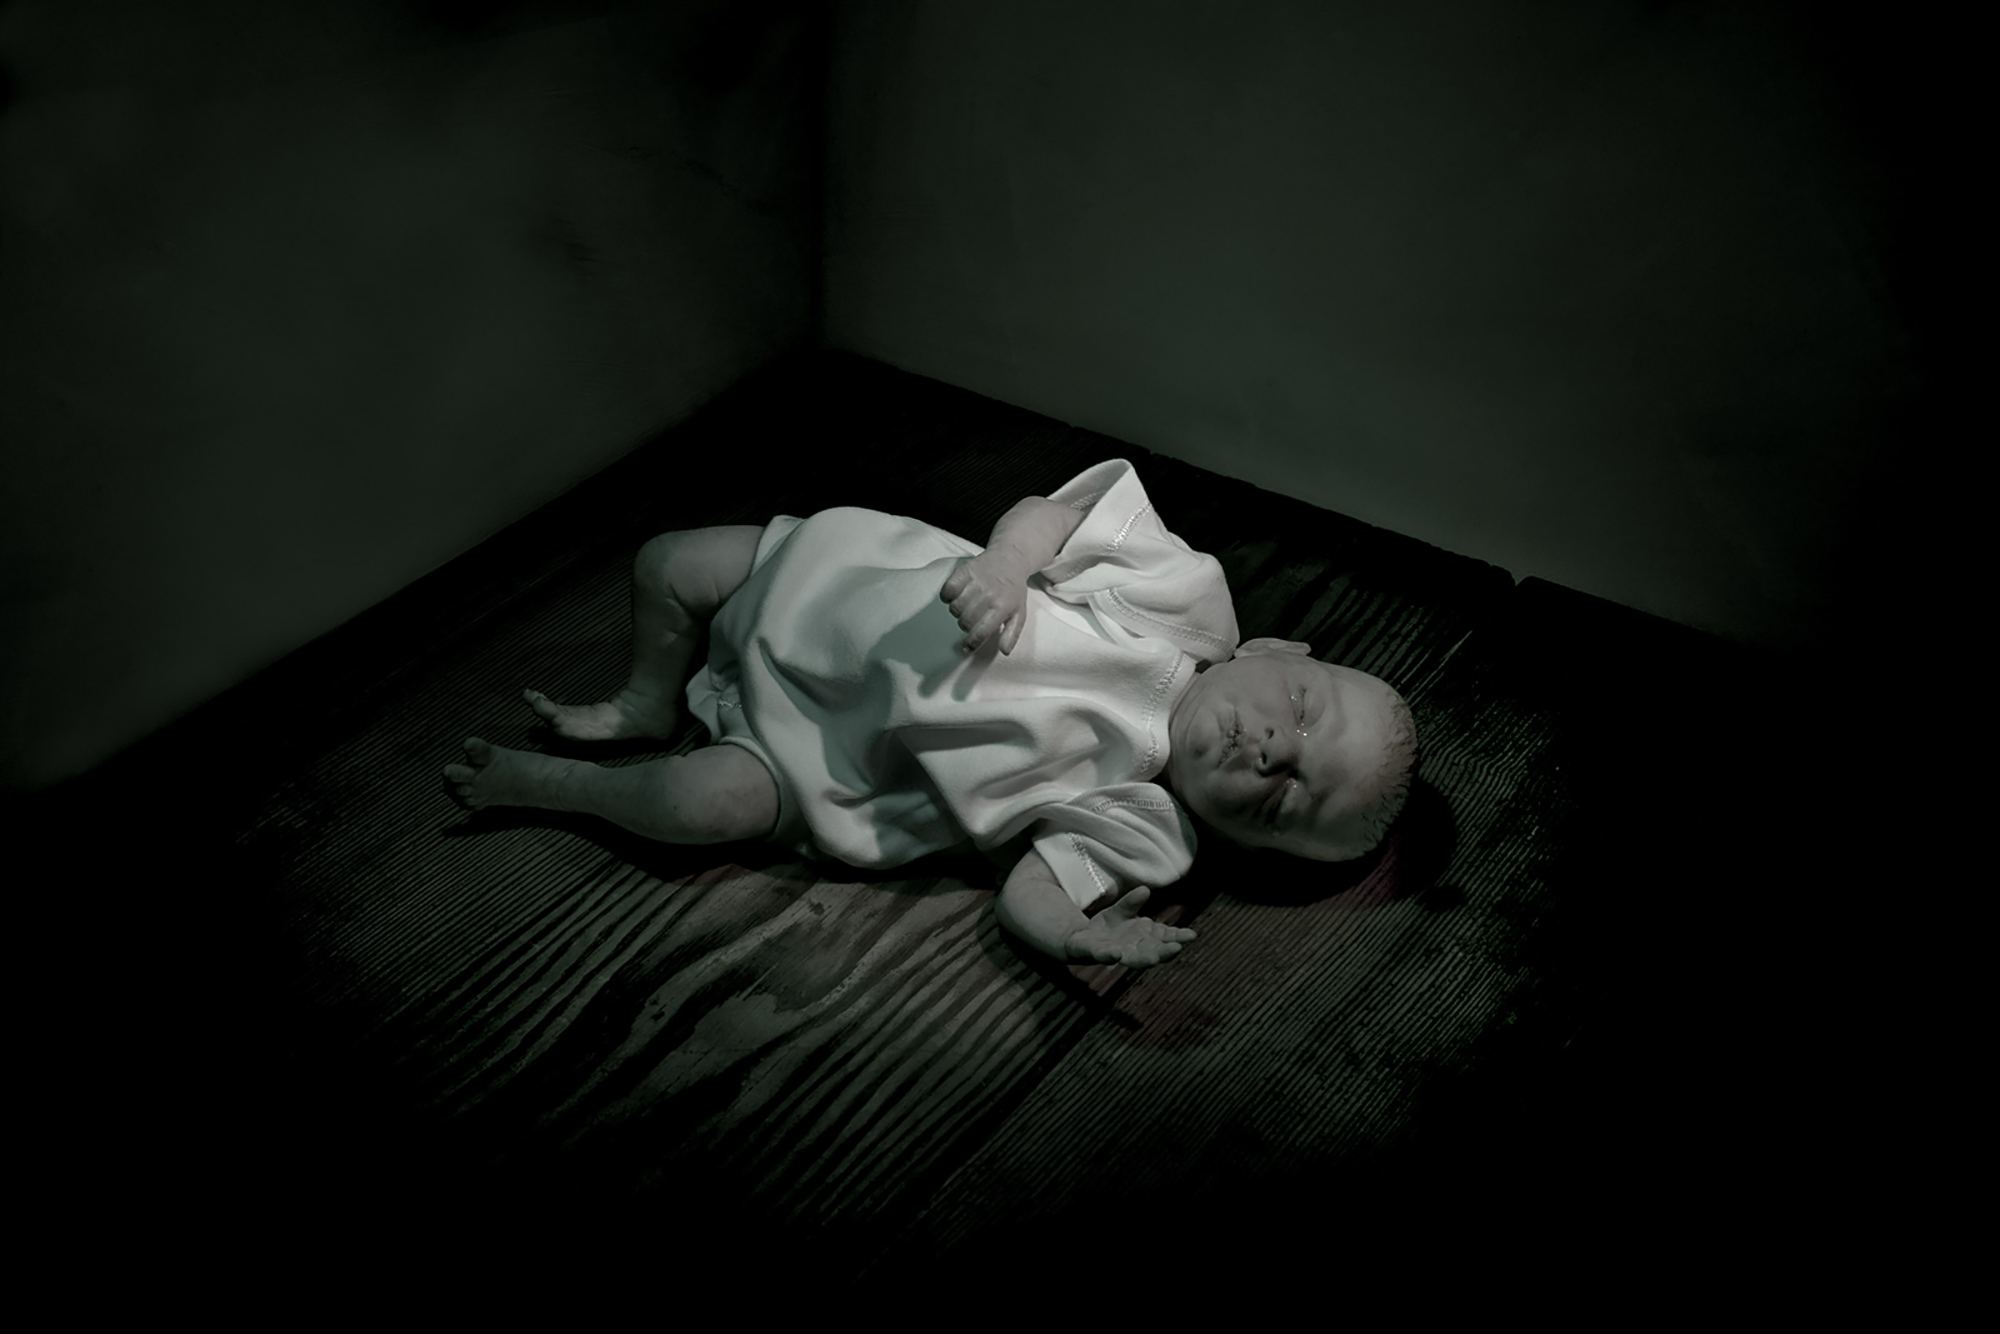 Kevin Mallett - baby doll lying down